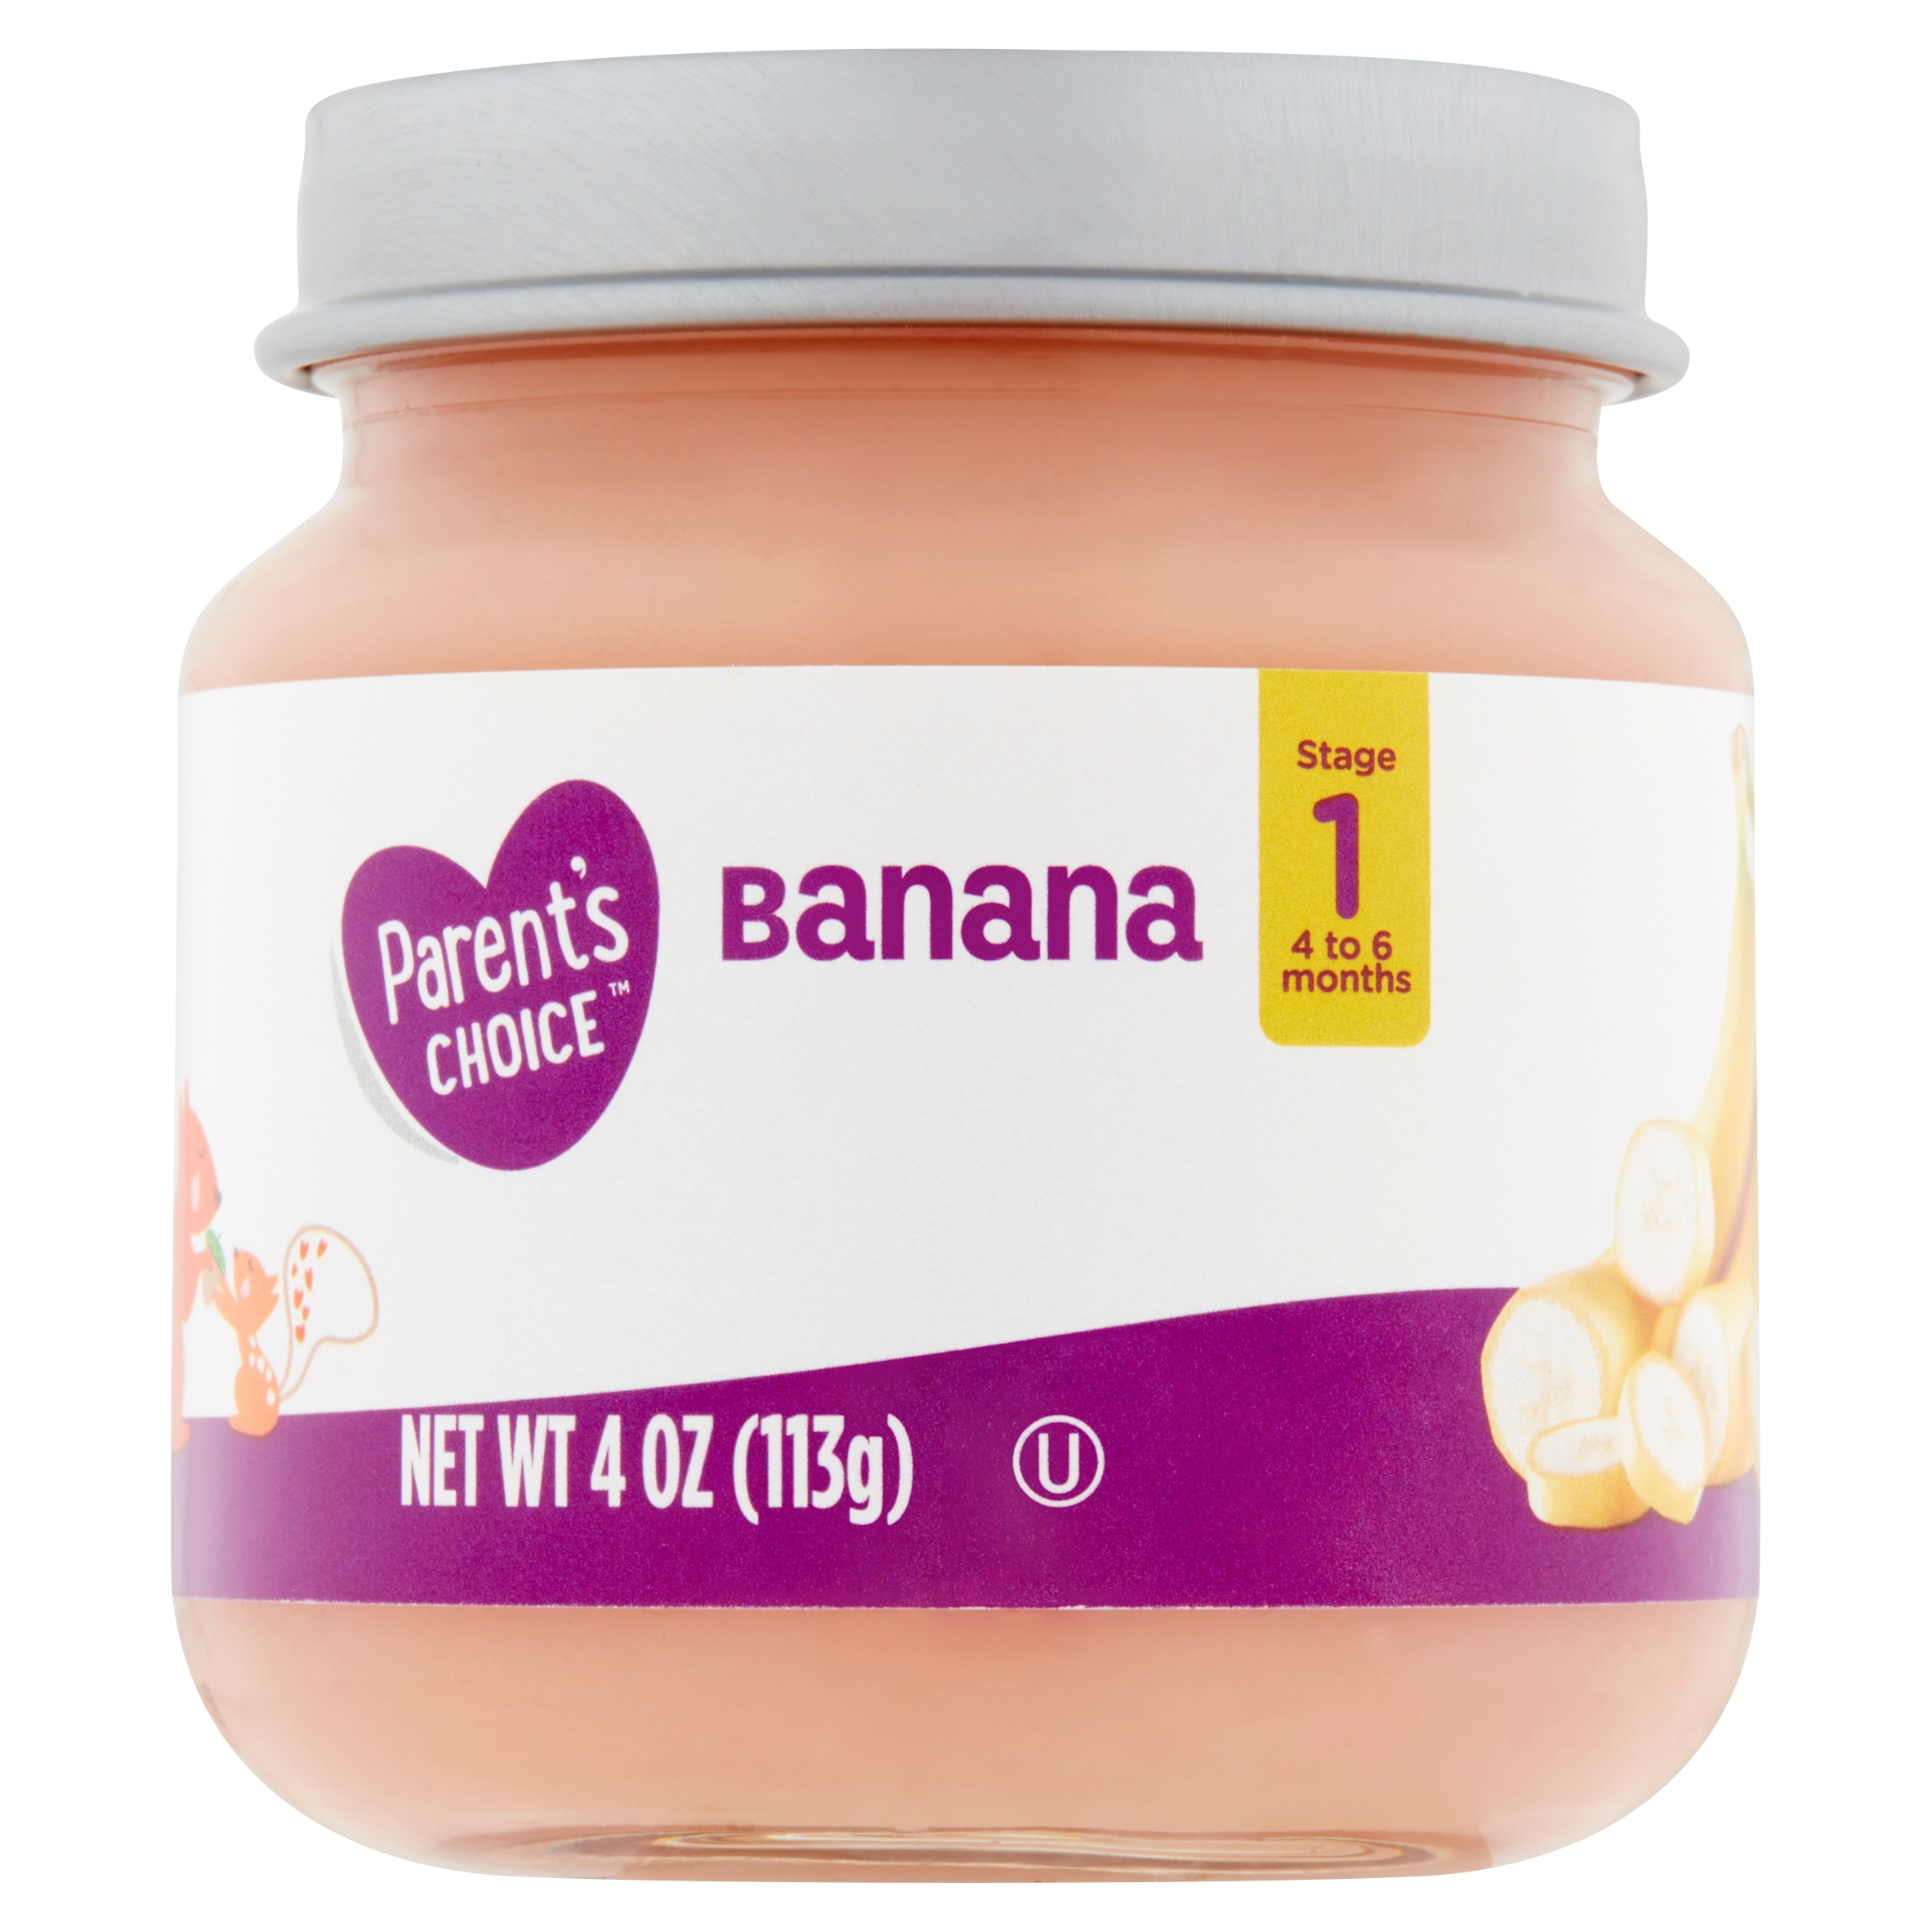 Parent's Choice Baby Food, Banana, Stage 1, 4 oz